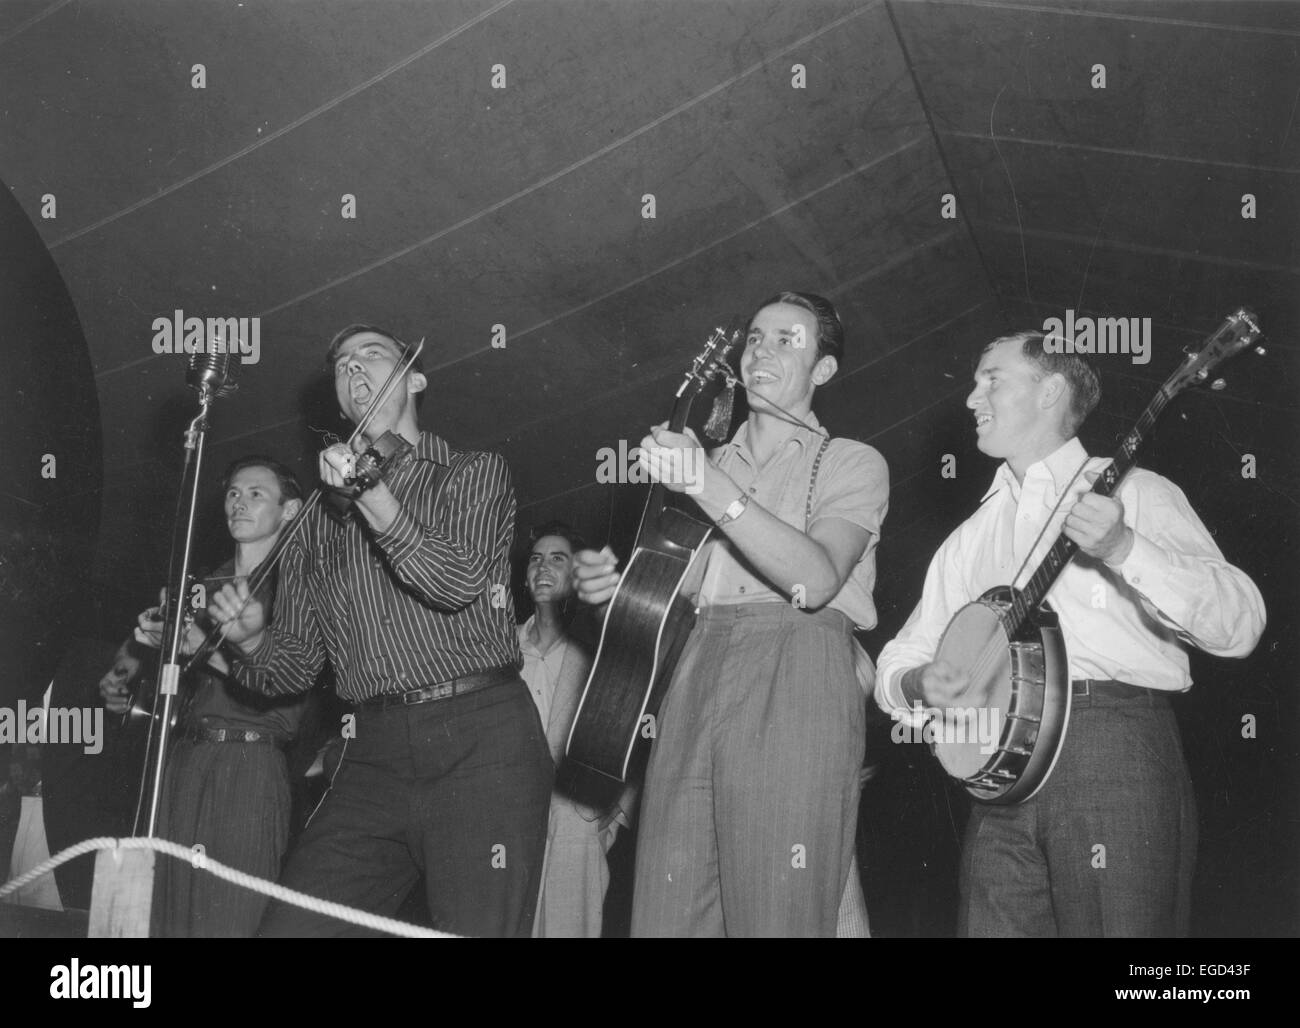 Four musicians performing at the Mountain Musical Festival, Asheville, North Carolina, circa 1930s-1940s - Stock Image